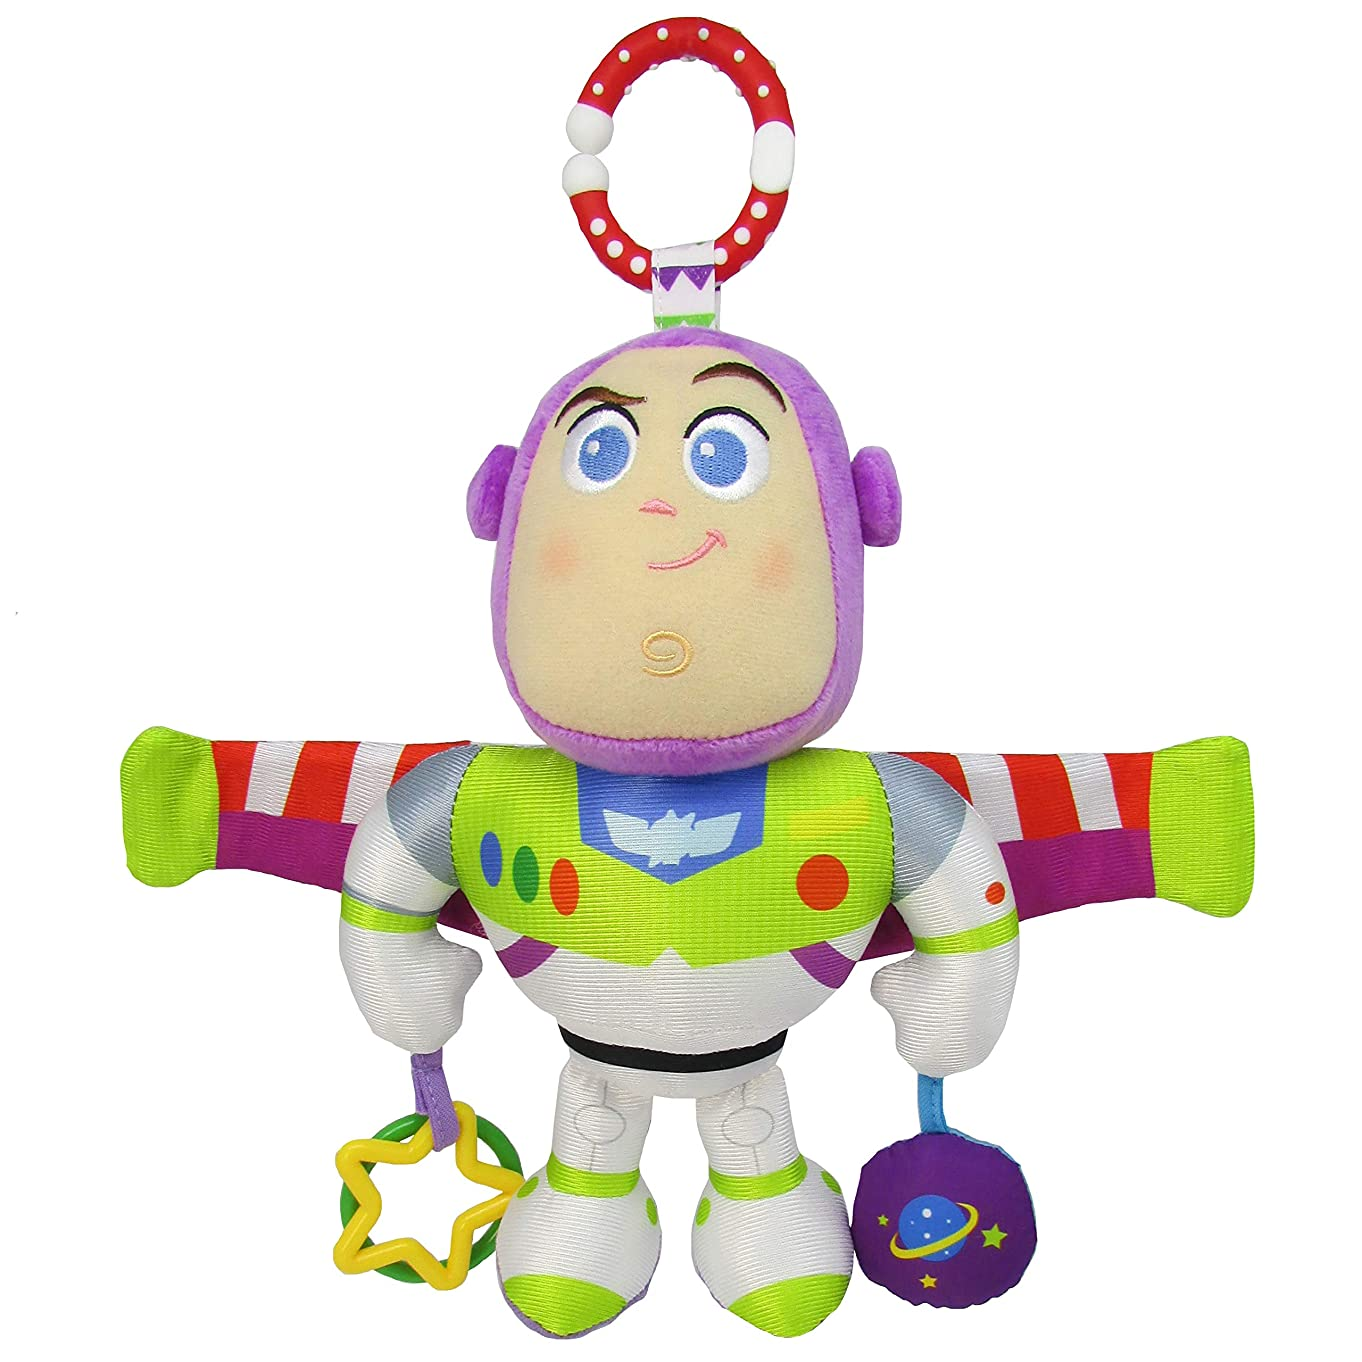 Disney?Pixar Toy Story Buzz Lightyear On The Go Activity Toy